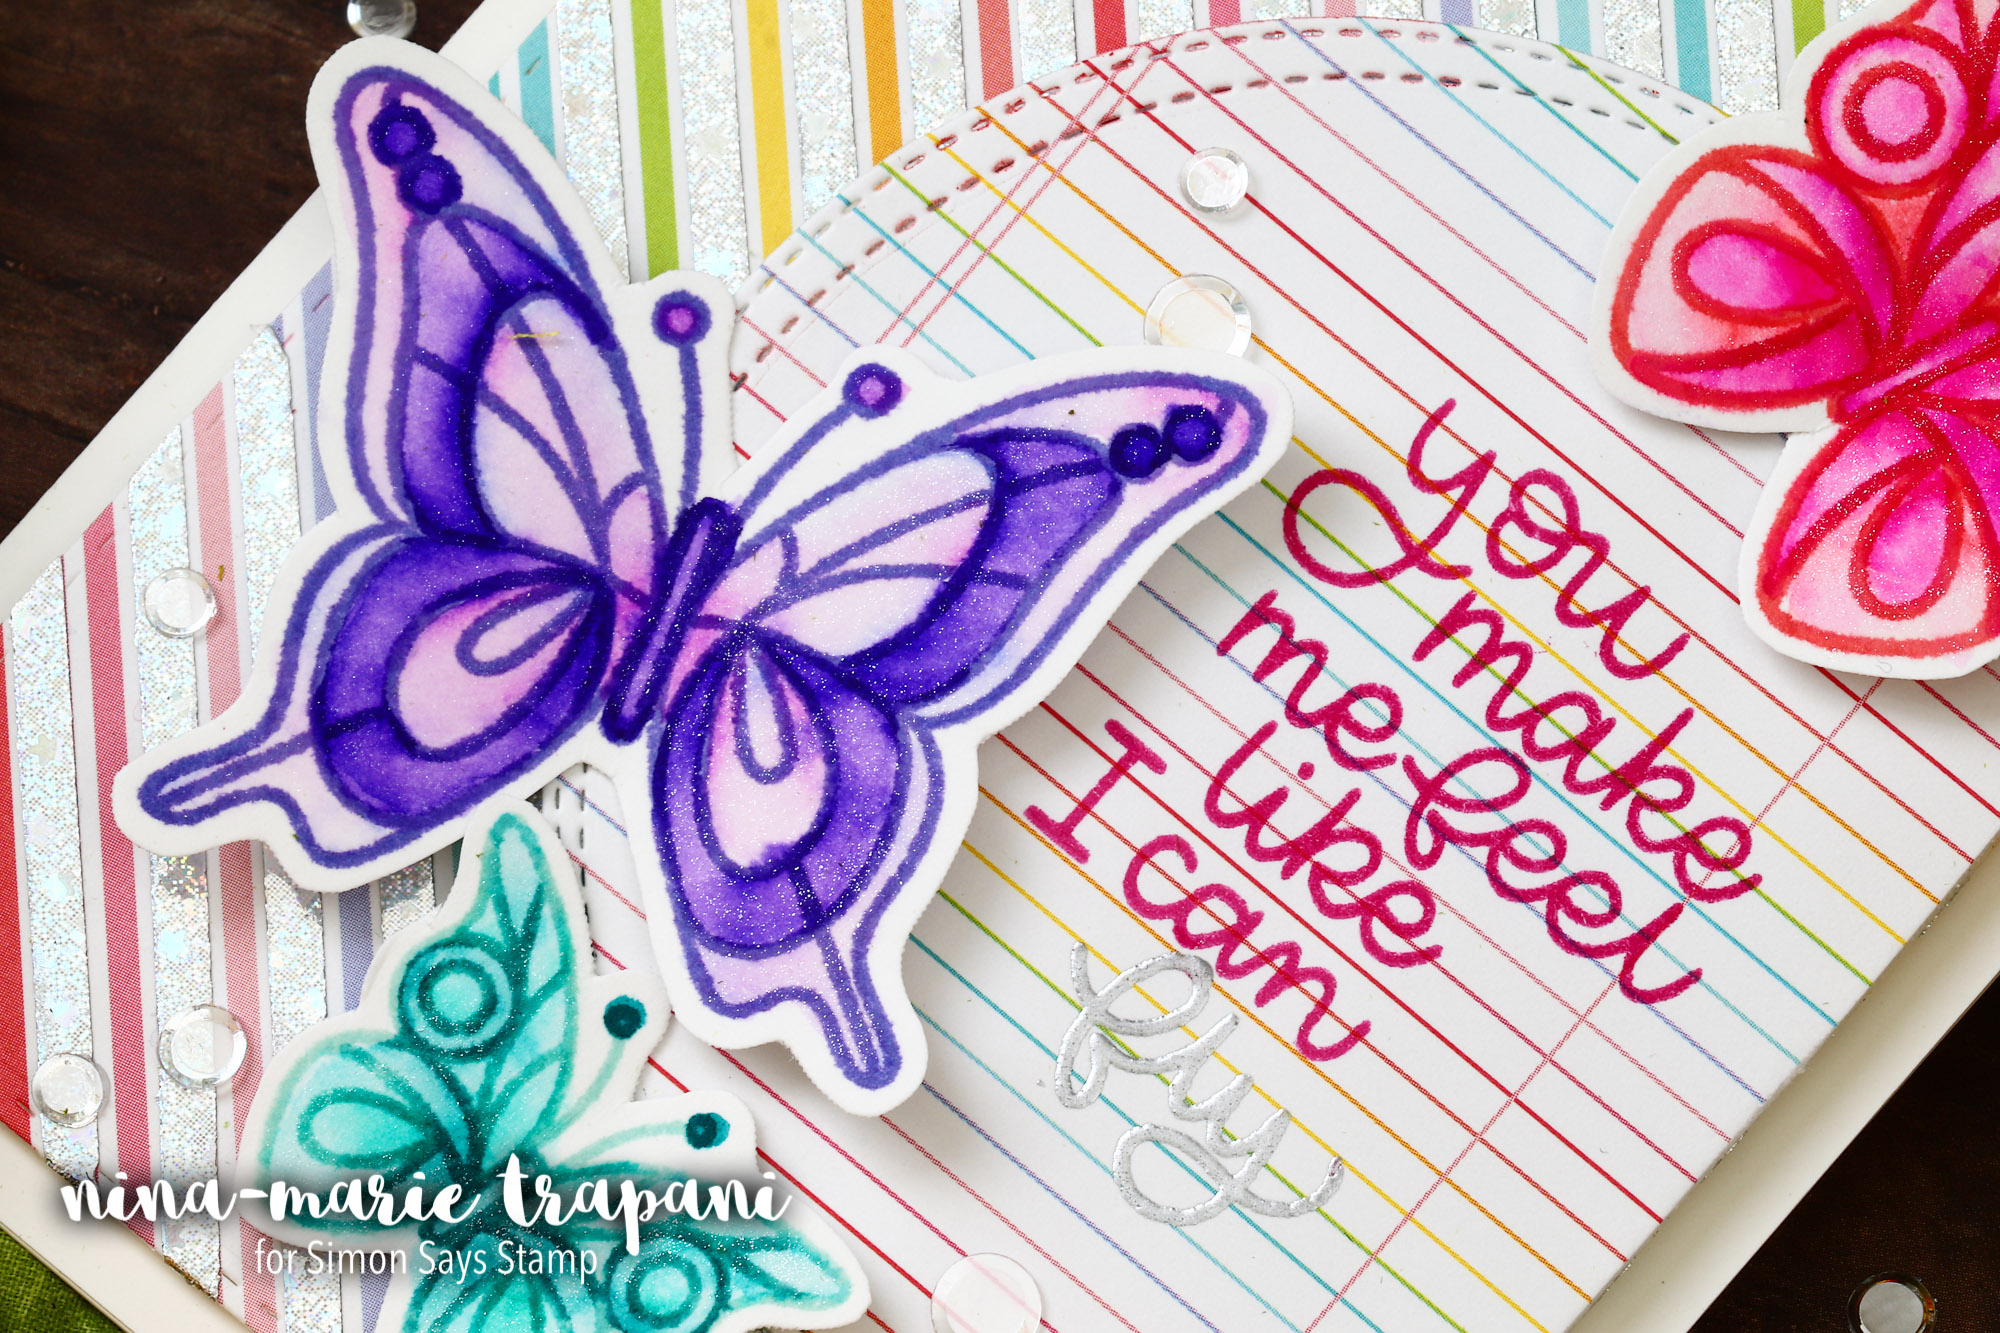 Foiling with Tape + Simon's Beautiful Day April 2018 Card Kit